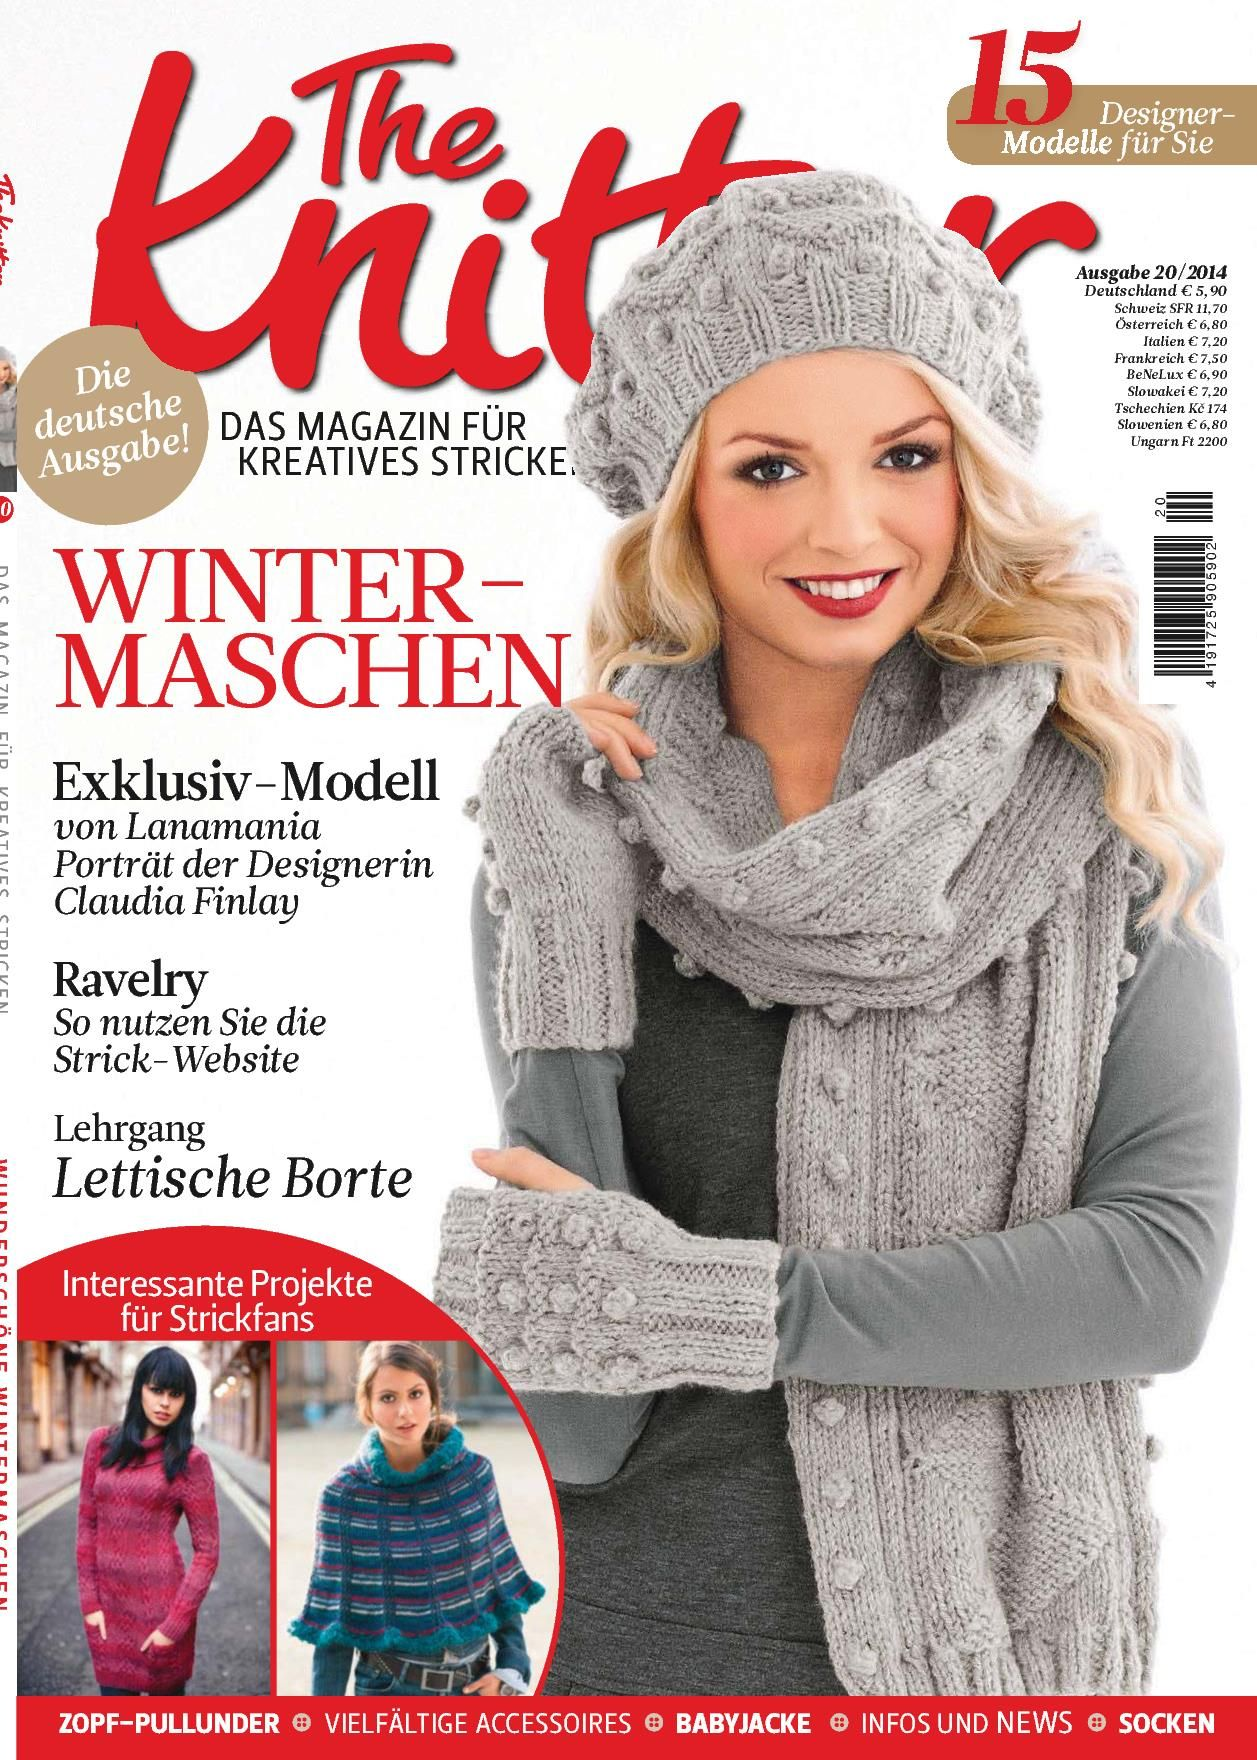 The Knitter Knit Magazines Books Pinterest Stricken